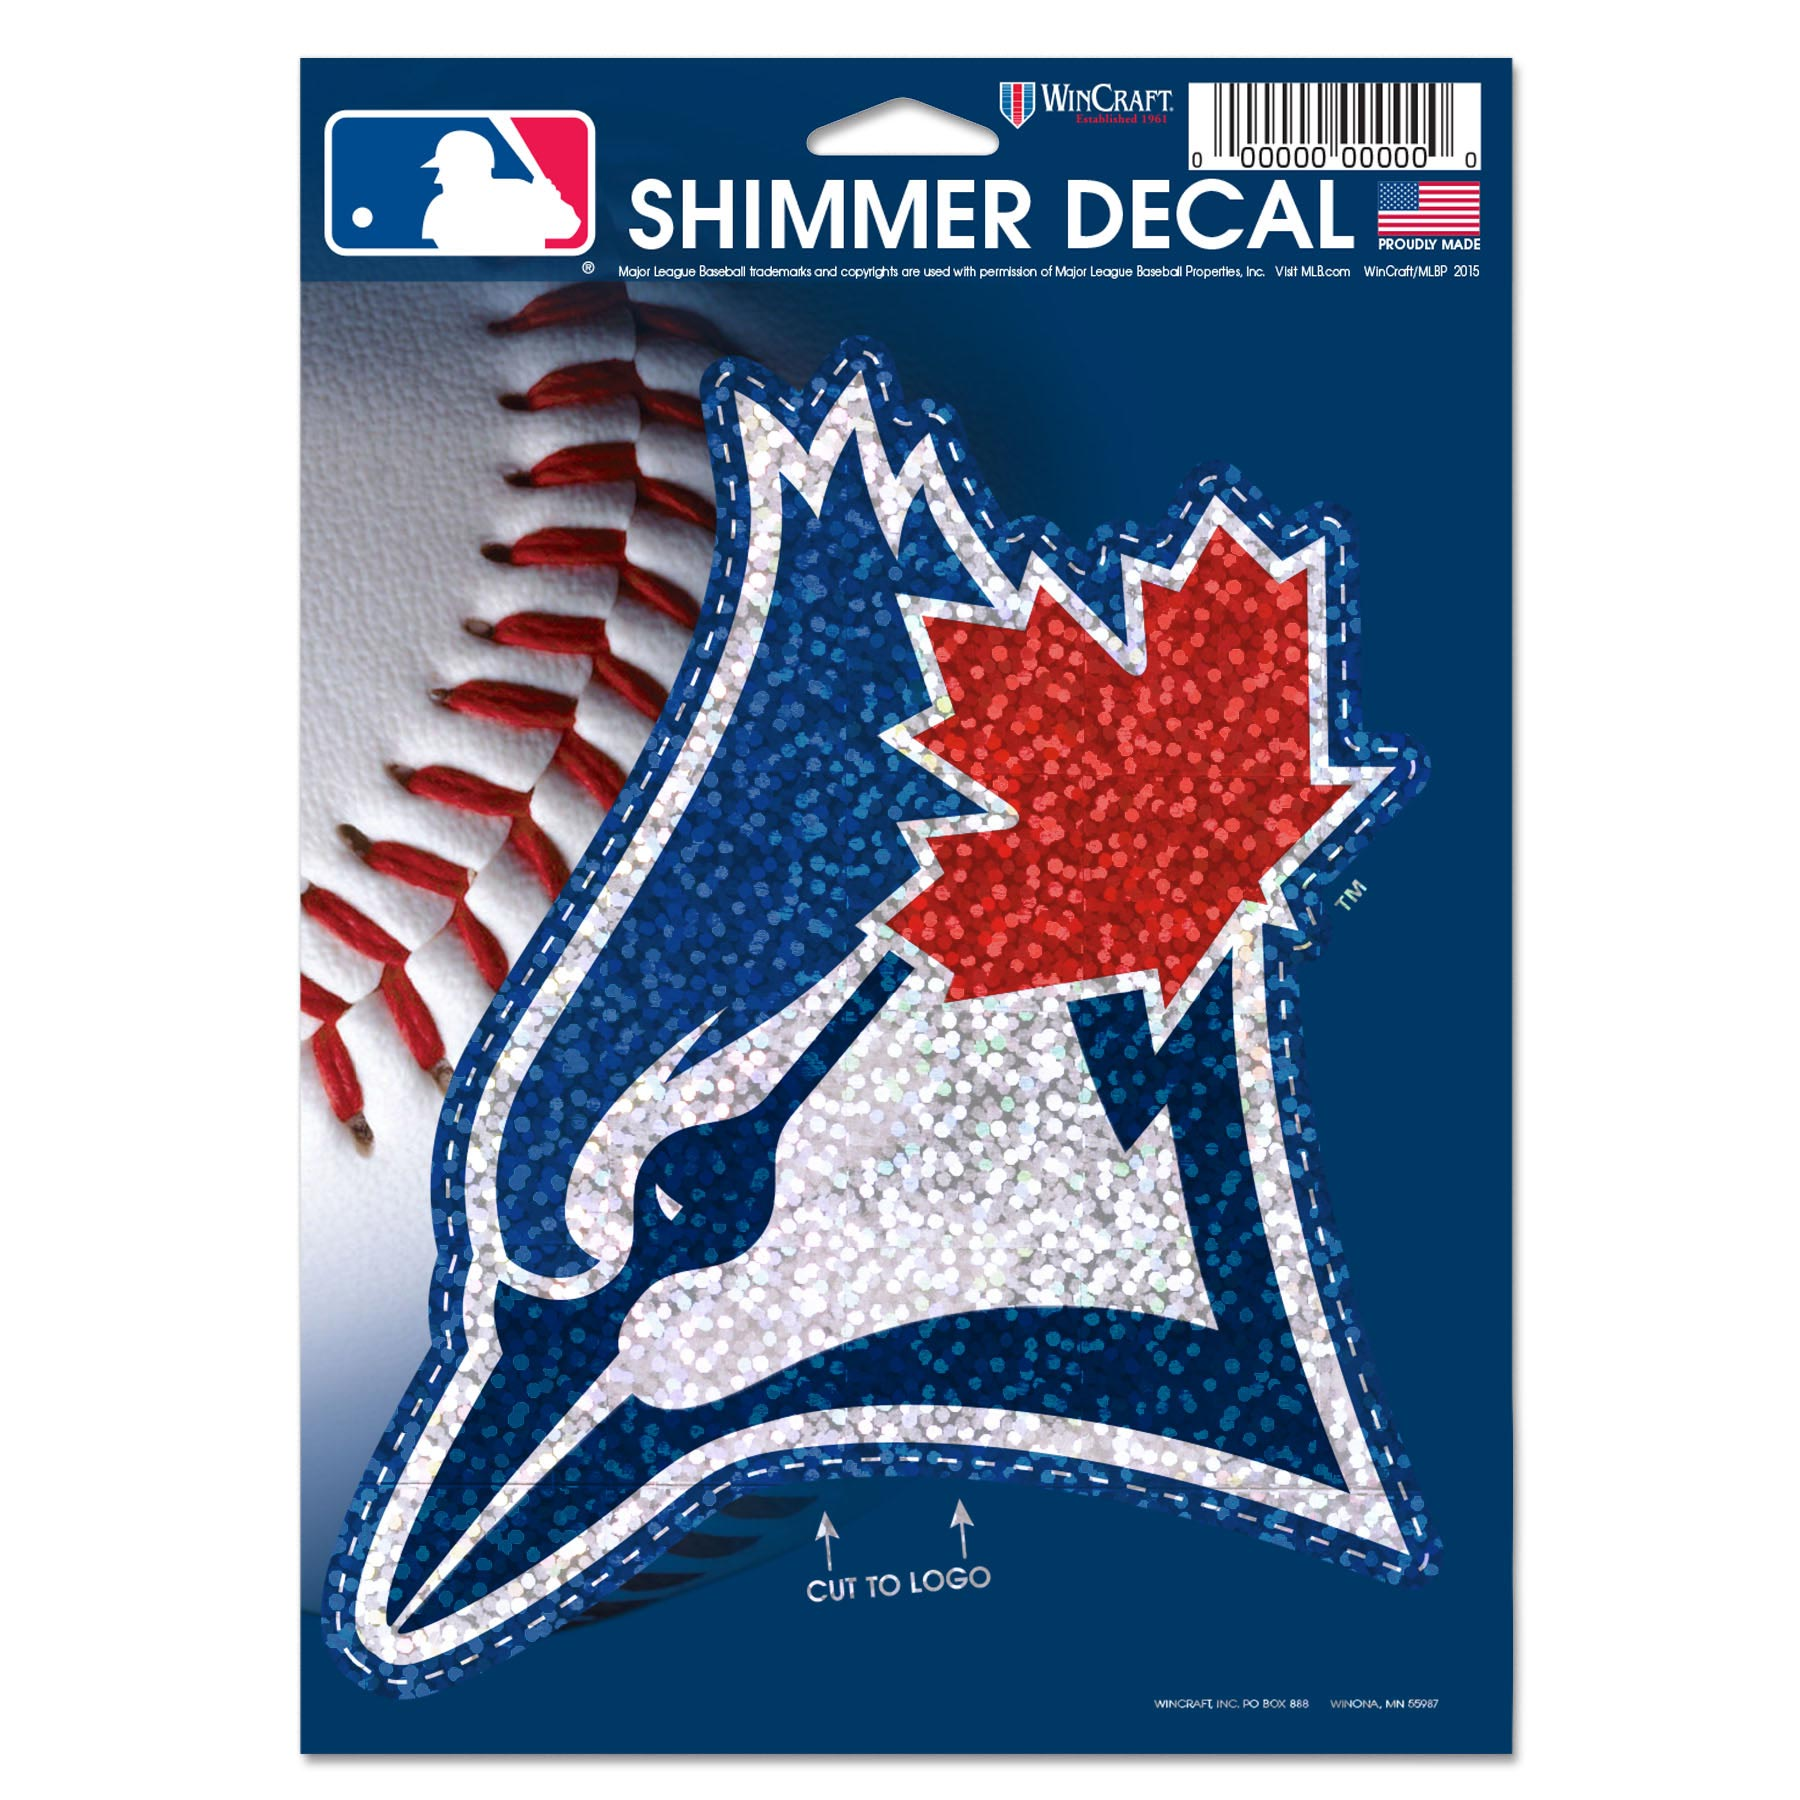 "Toronto Blue Jays WinCraft 5"" x 7"" Shimmer Decal"